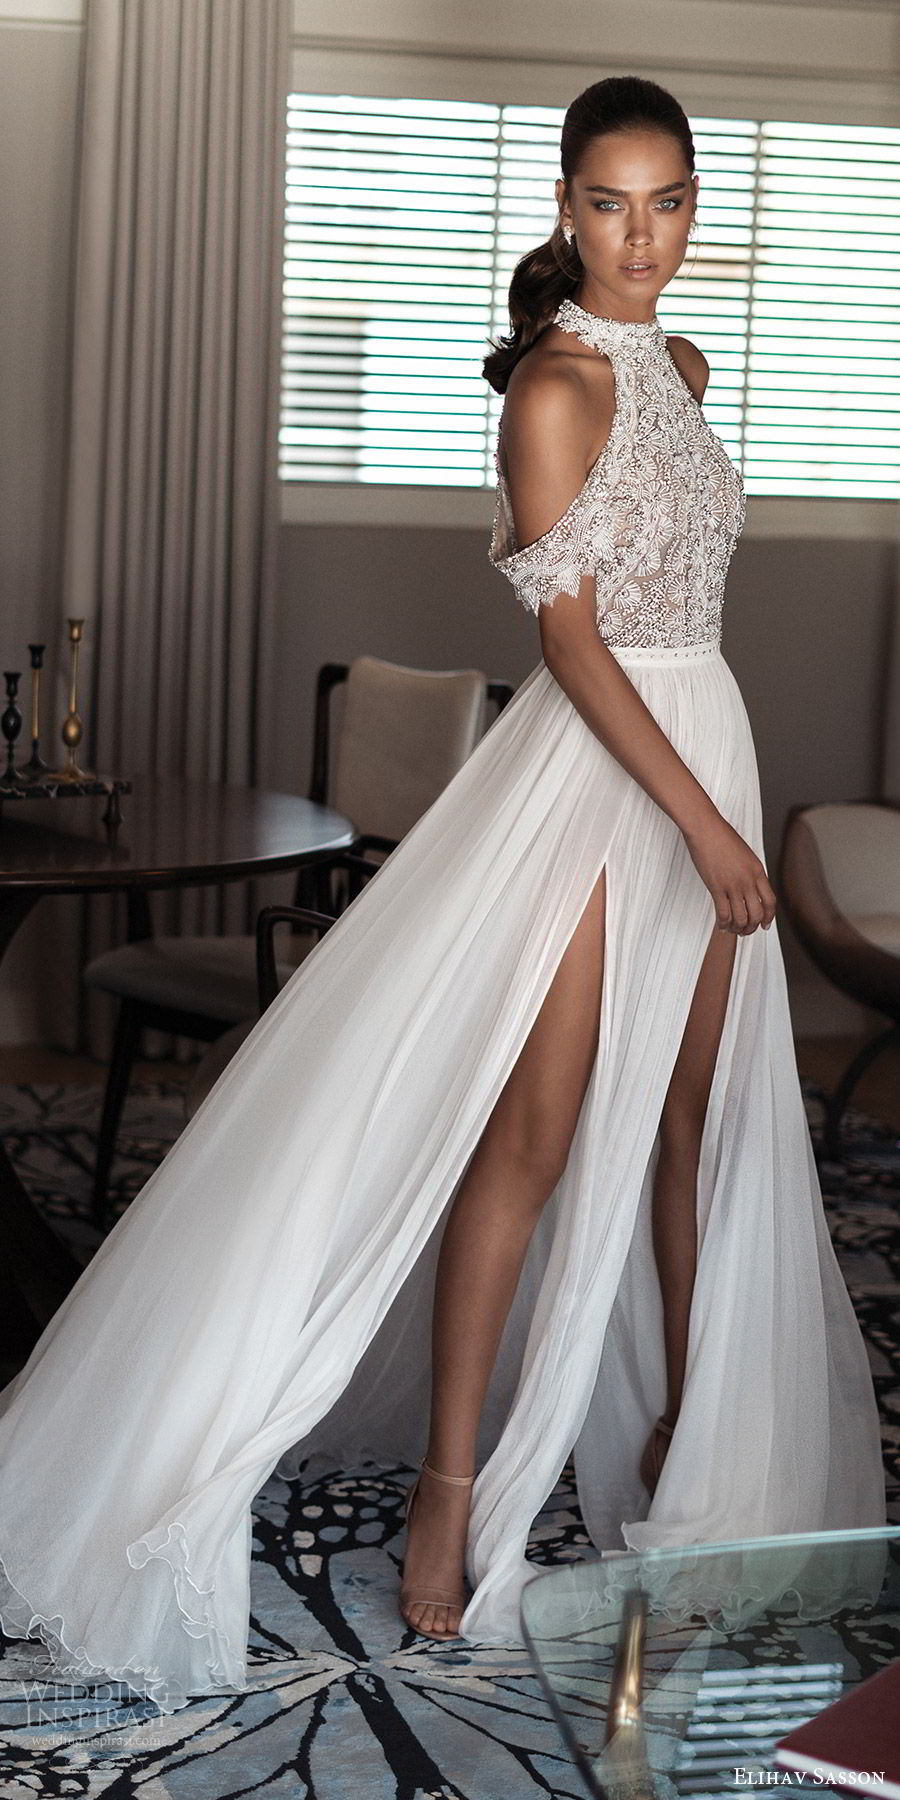 c7fa9046534 elihav sasson spring 2018 bridal high neck cold shoulder drape sleeves  beaded bodice slit skirt a